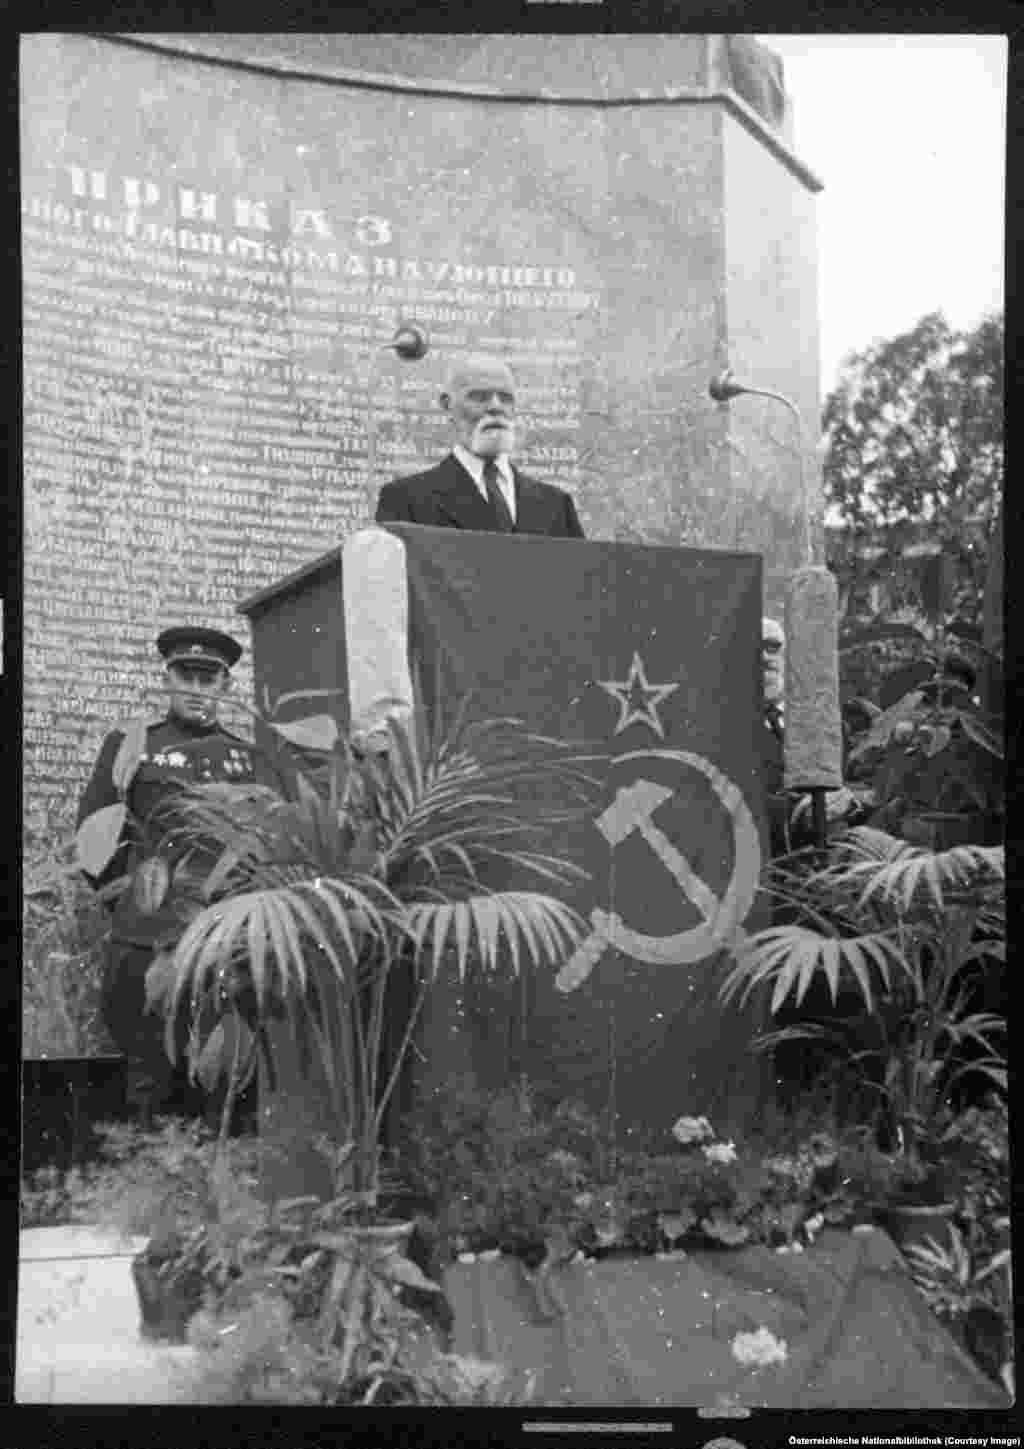 Theodor Koerner, the mayor of Vienna and soon-to-be president of Austria, at the unveiling of a memorial to Soviet soldiers killed during the capture of Vienna.